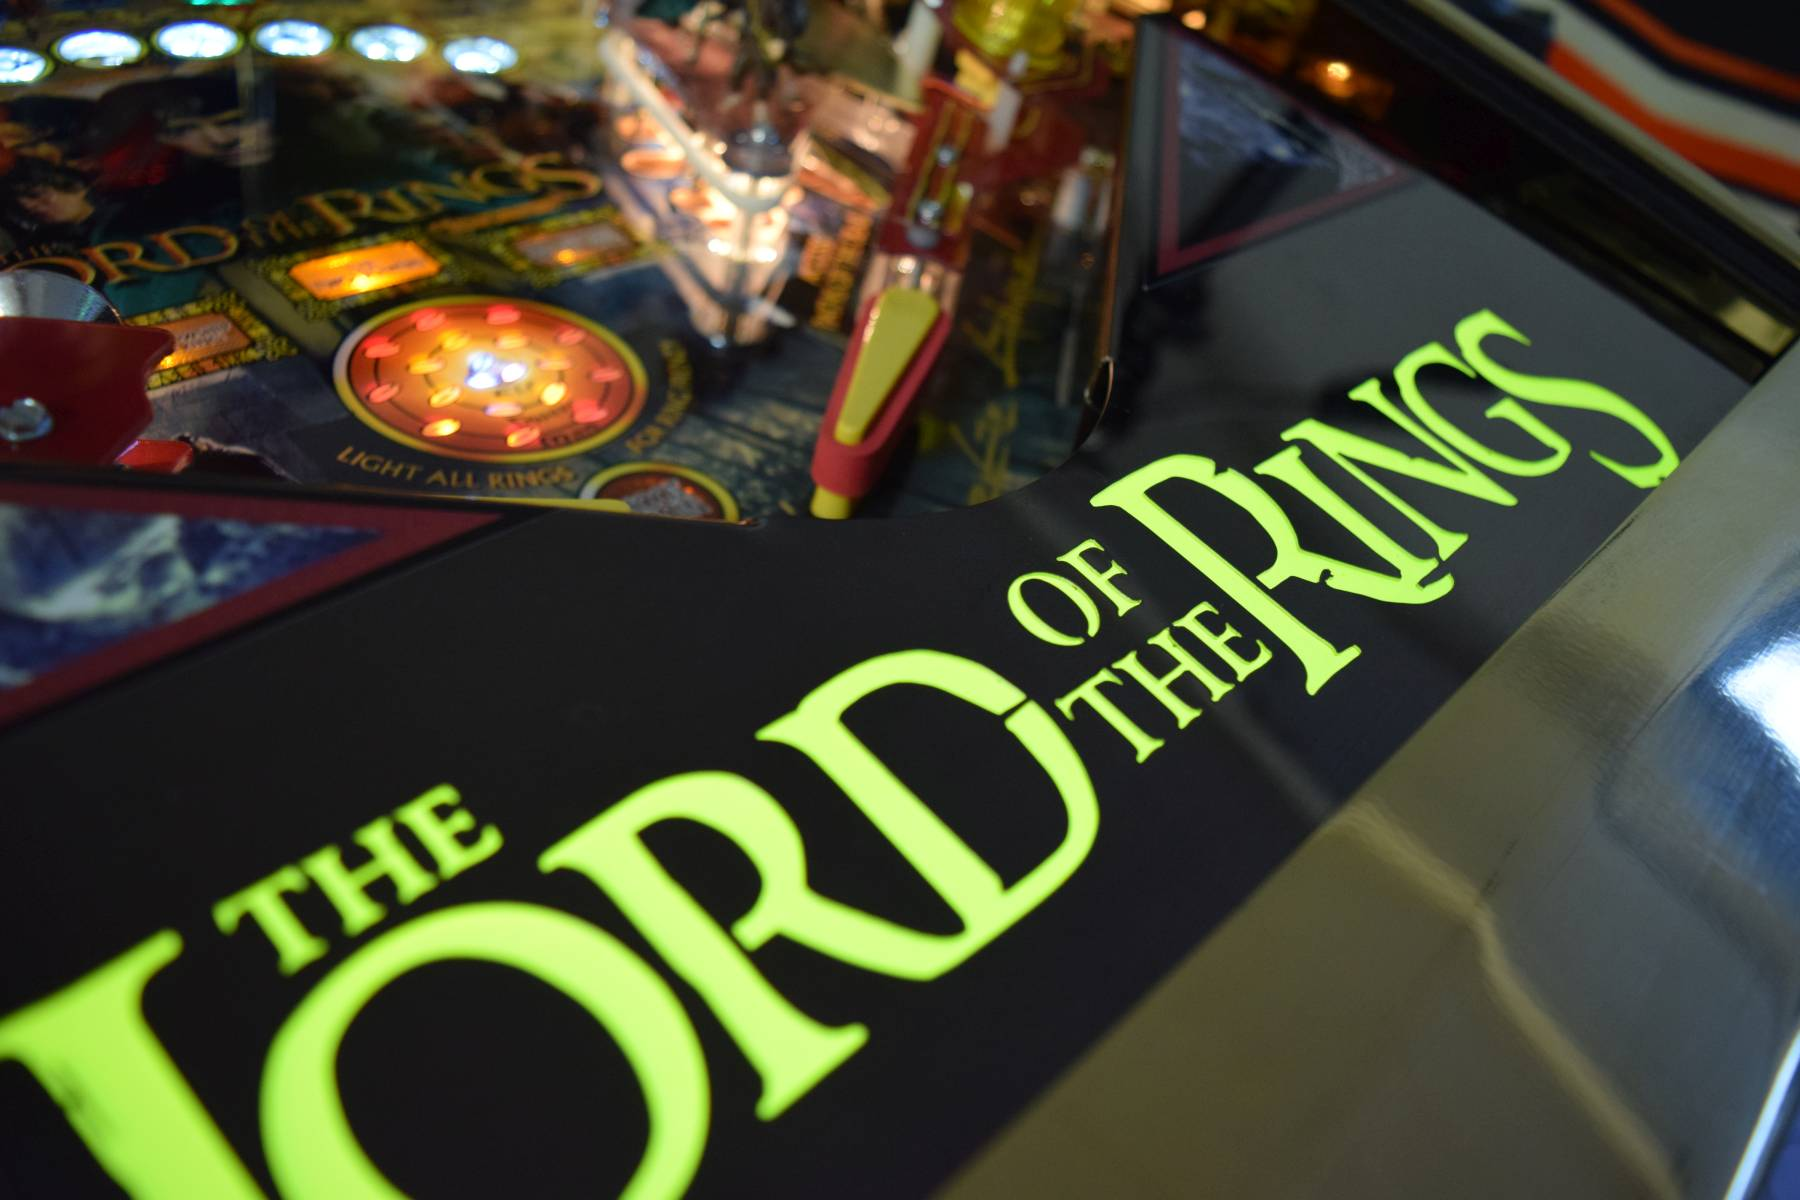 The-Lord-of-the-Rings13.jpg